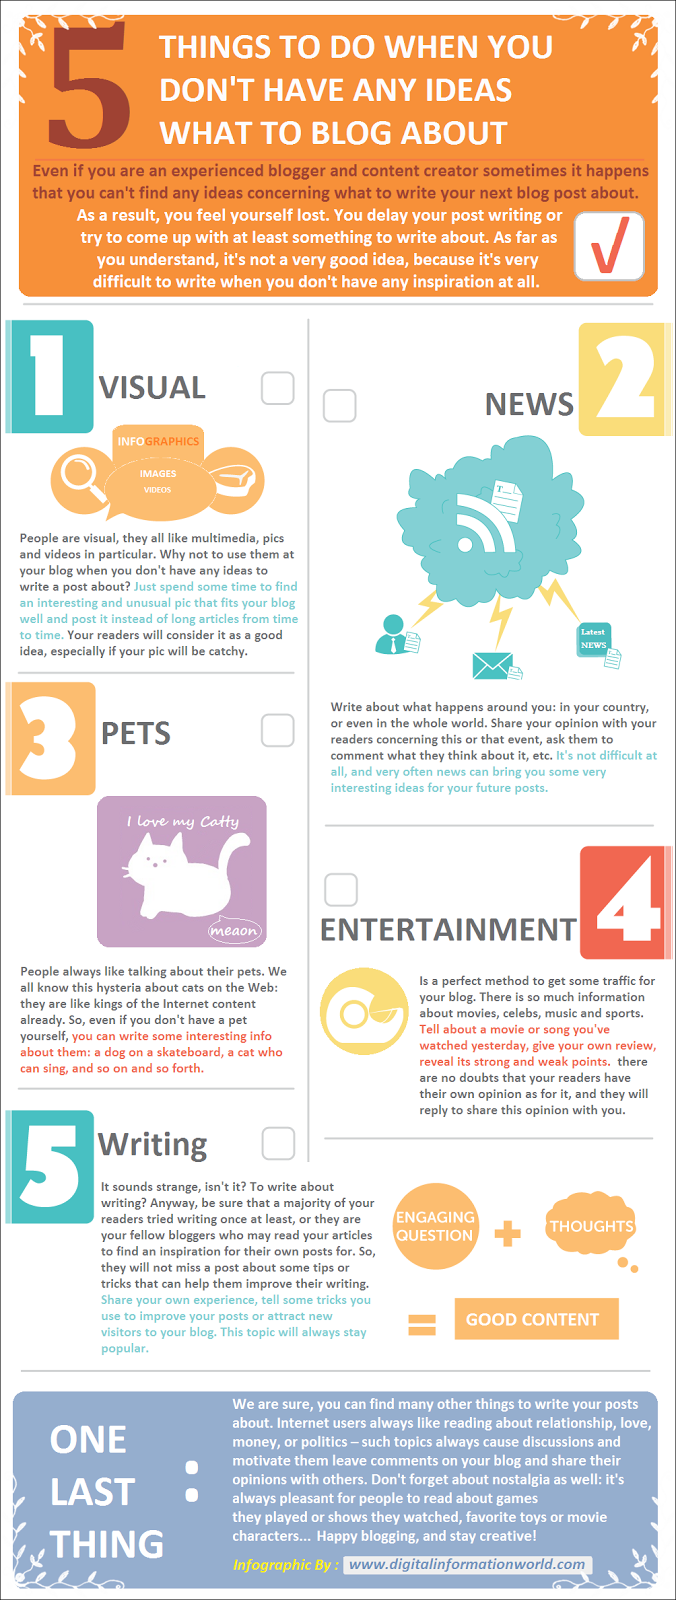 5 things to do when you don't have any ideas what to blog about : infographic